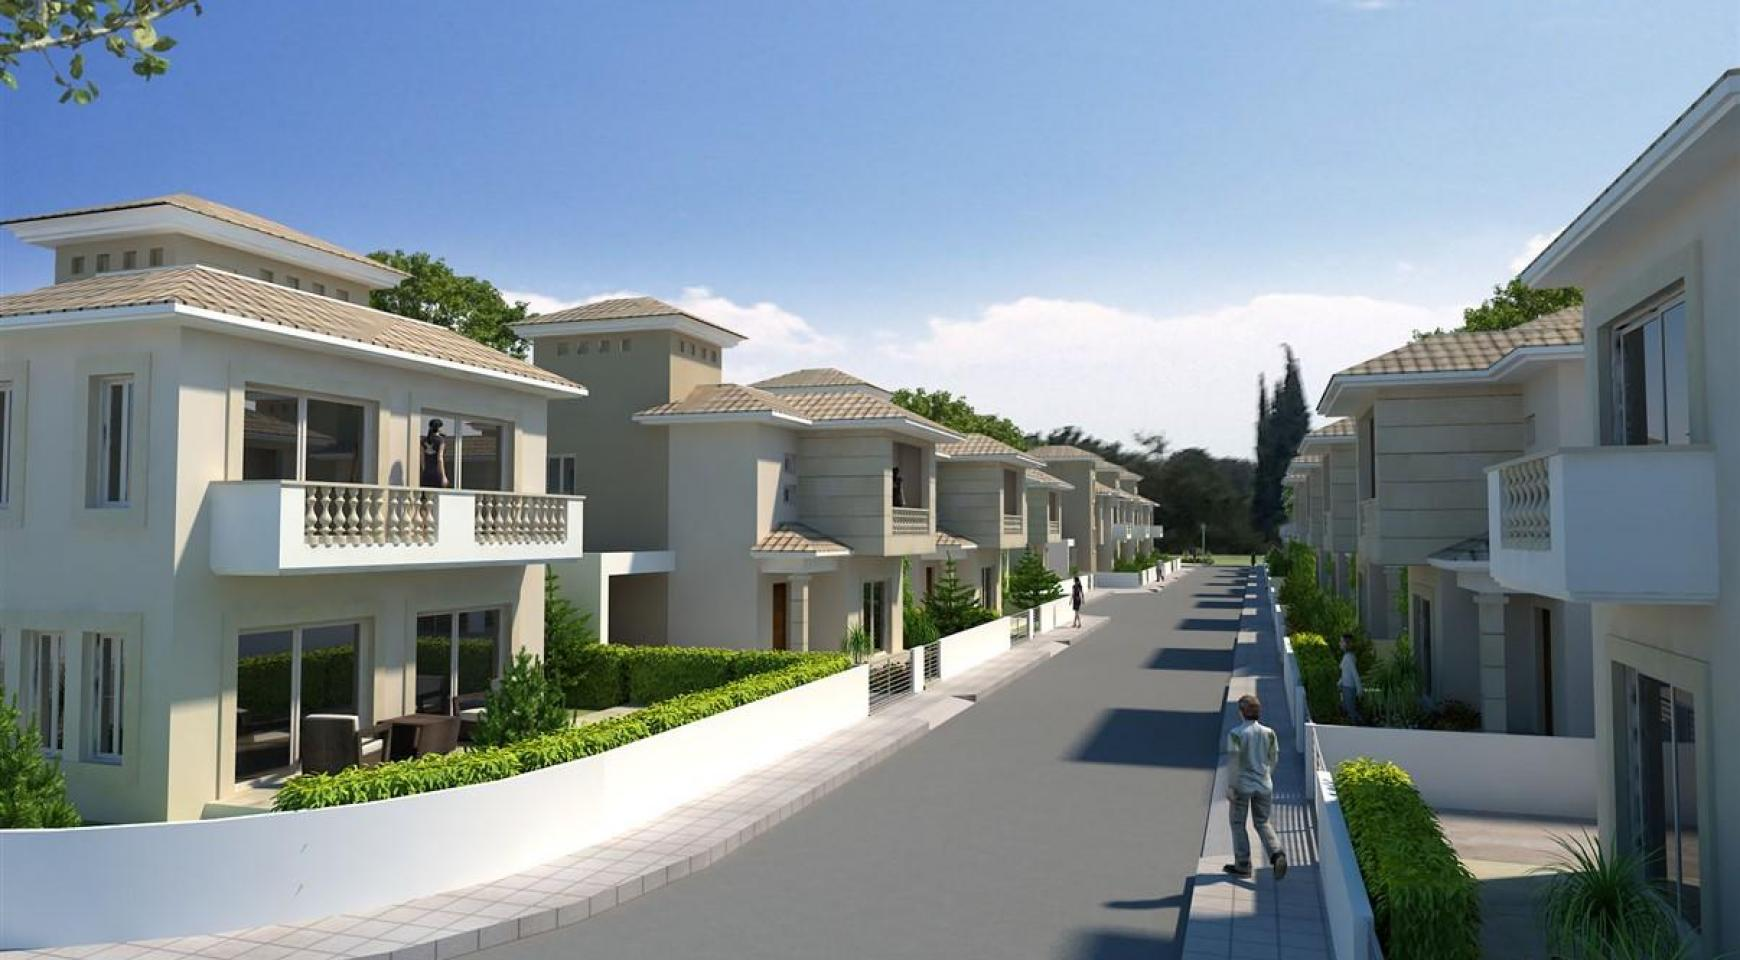 3 Bedroom Villa in New Project in Paphos - 20